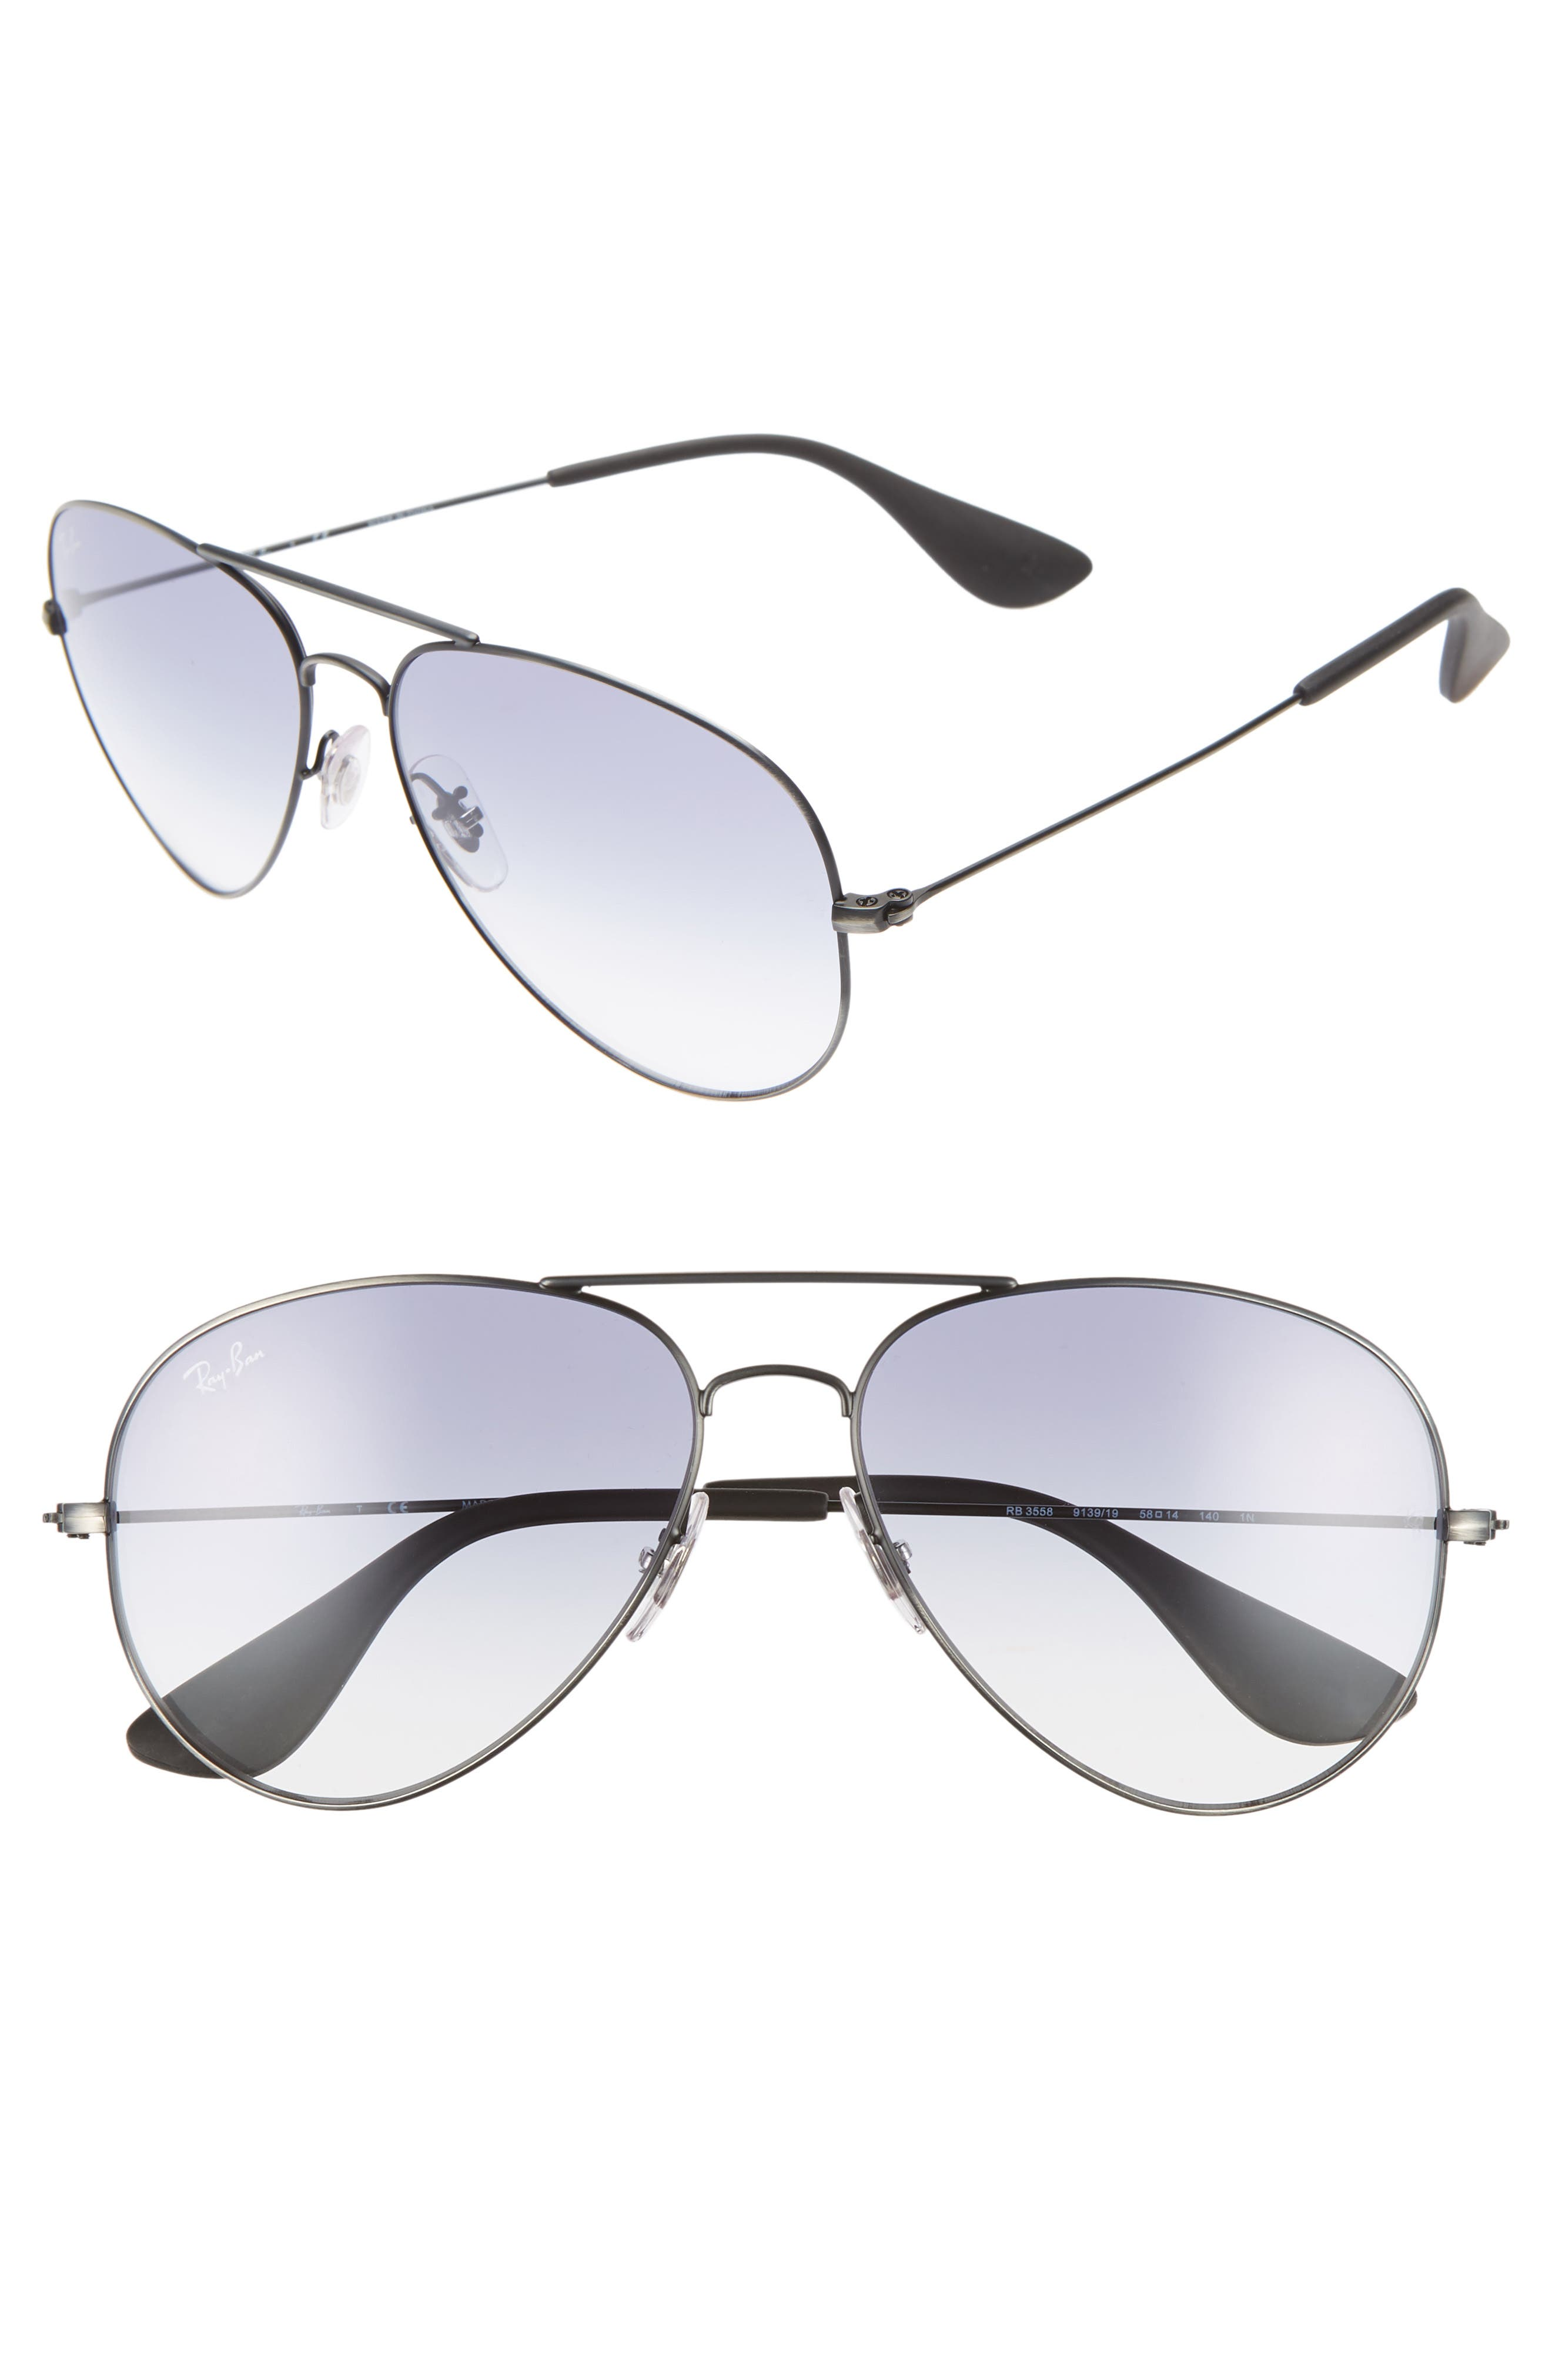 RAY-BAN,                             58mm Gradient Aviator Sunglasses,                             Main thumbnail 1, color,                             SILVER/ LIGHT BLUE GRADIENT